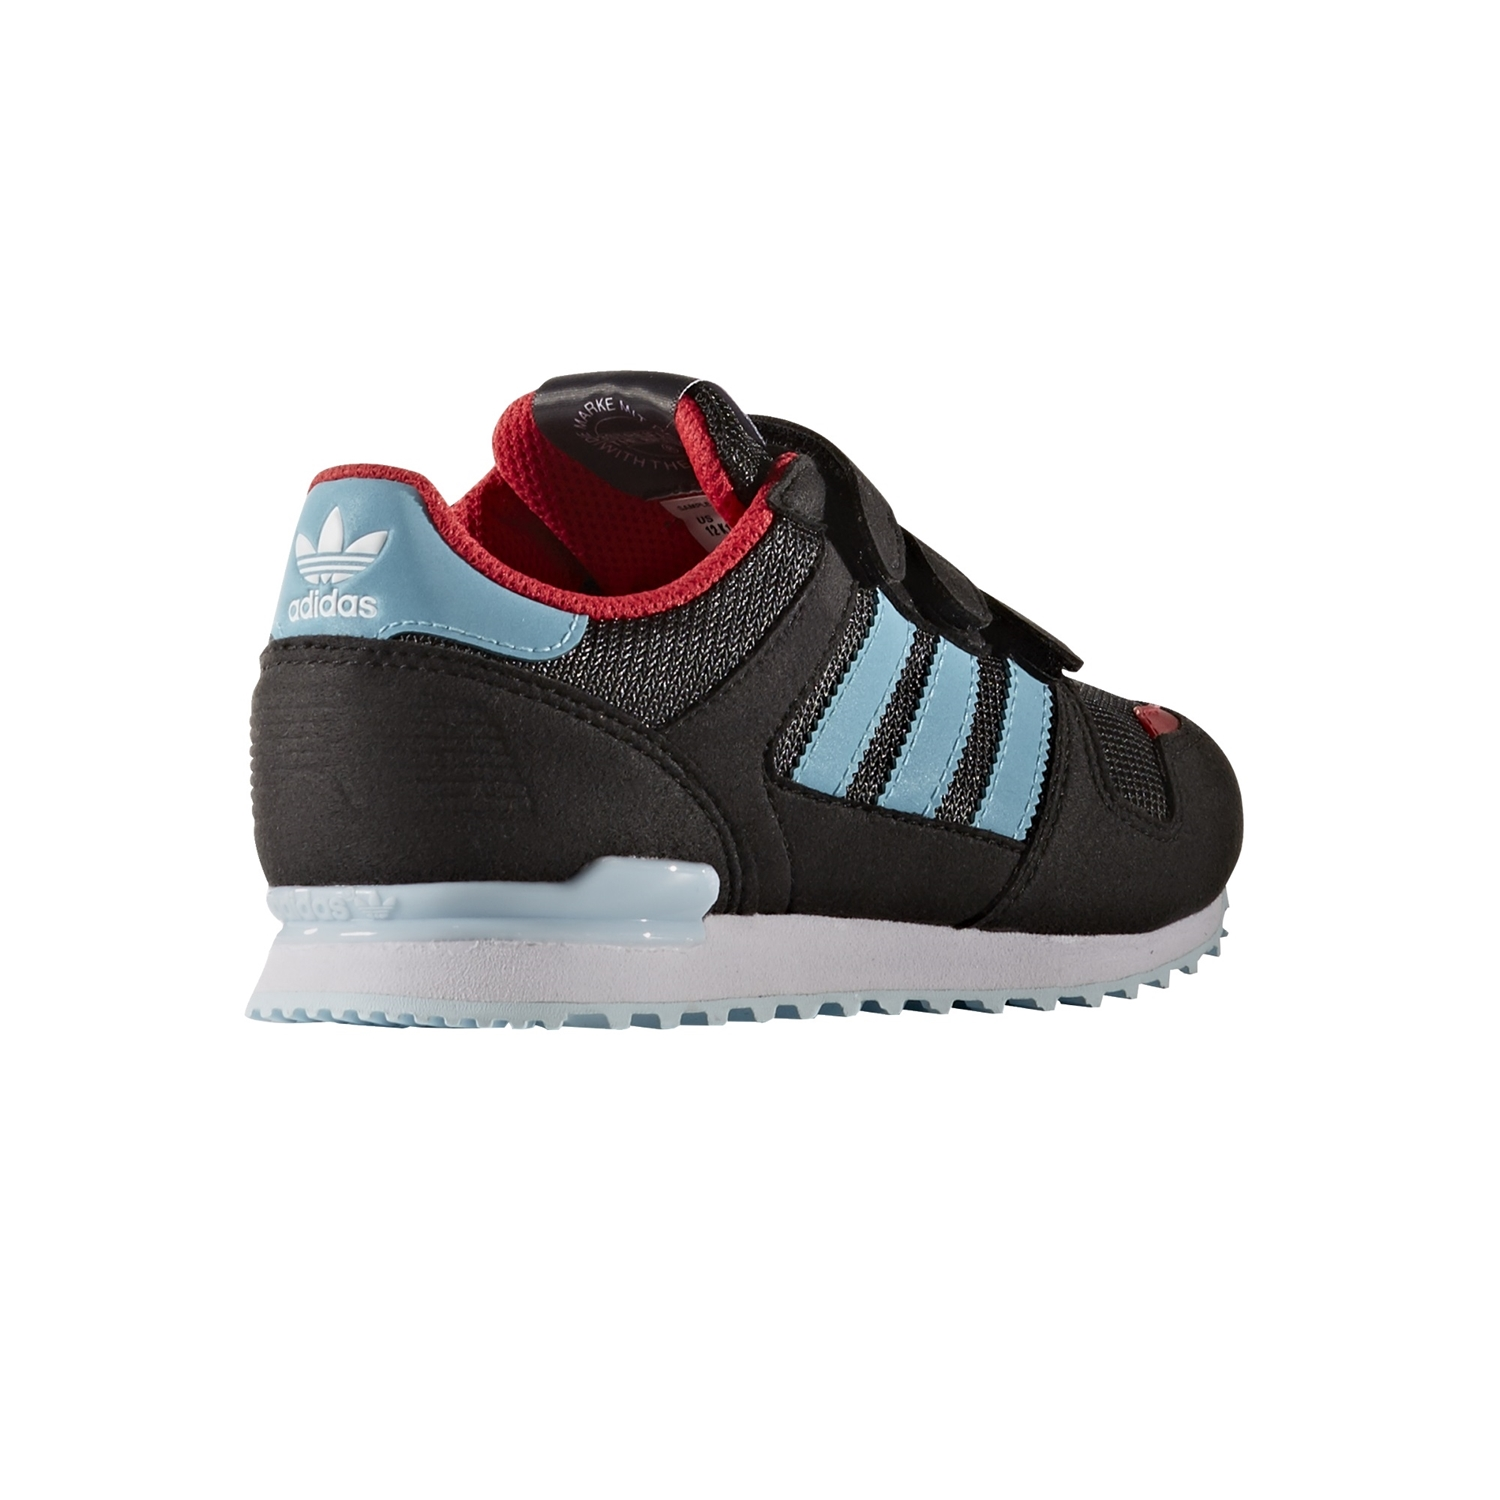 official photos 9ee1a 446e5 Adidas Originals ZX 700 CF C (black blue), ...